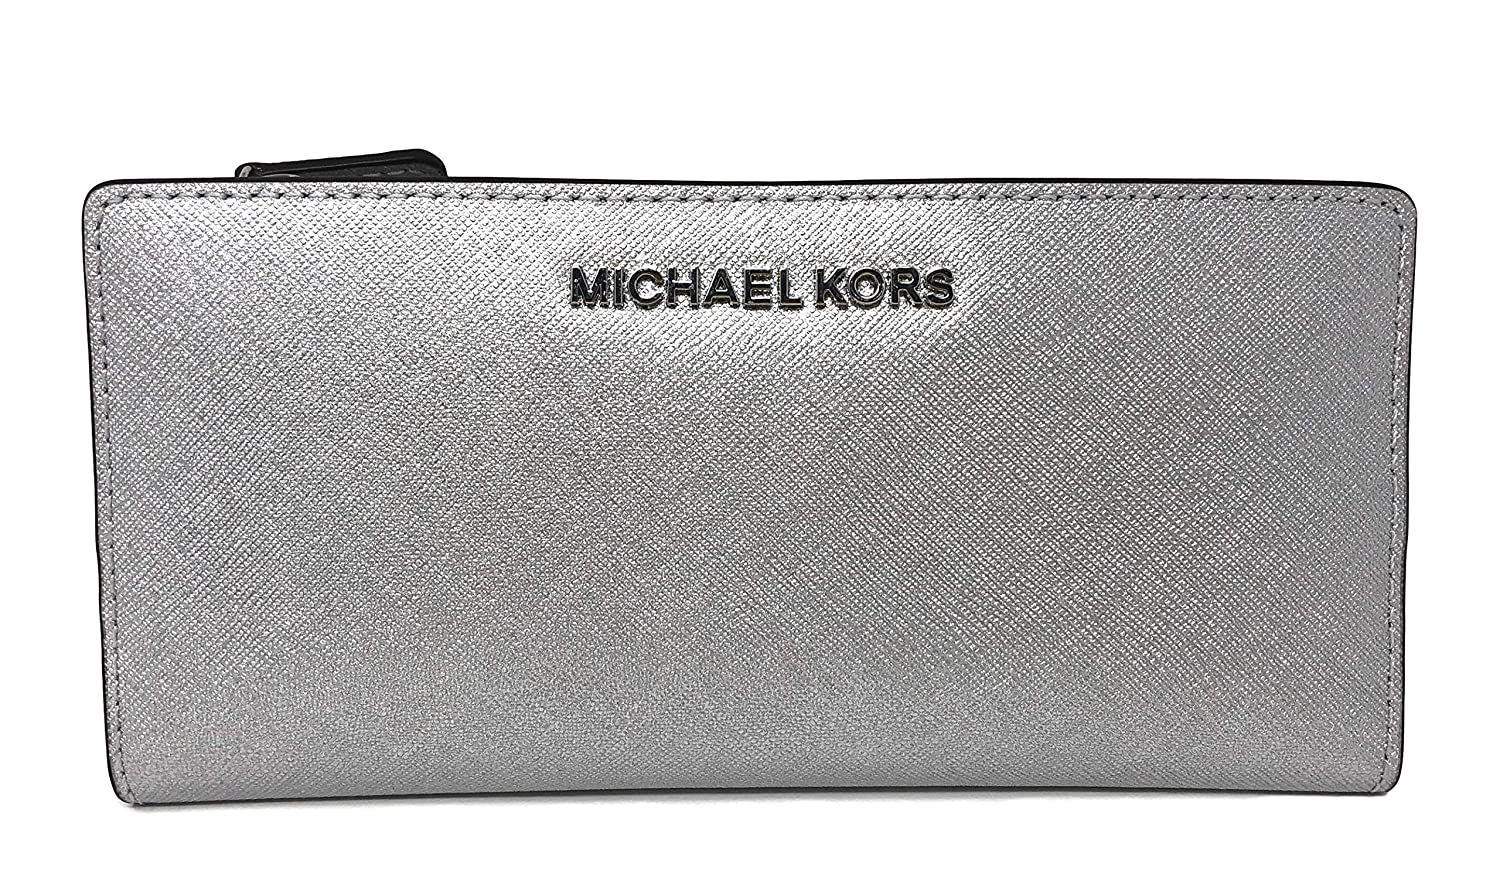 405d6986ab68 Amazon.com  Michael Kors Jet Set Travel Large Card Case Carryall Leather  Wallet in Silver  All About Faith